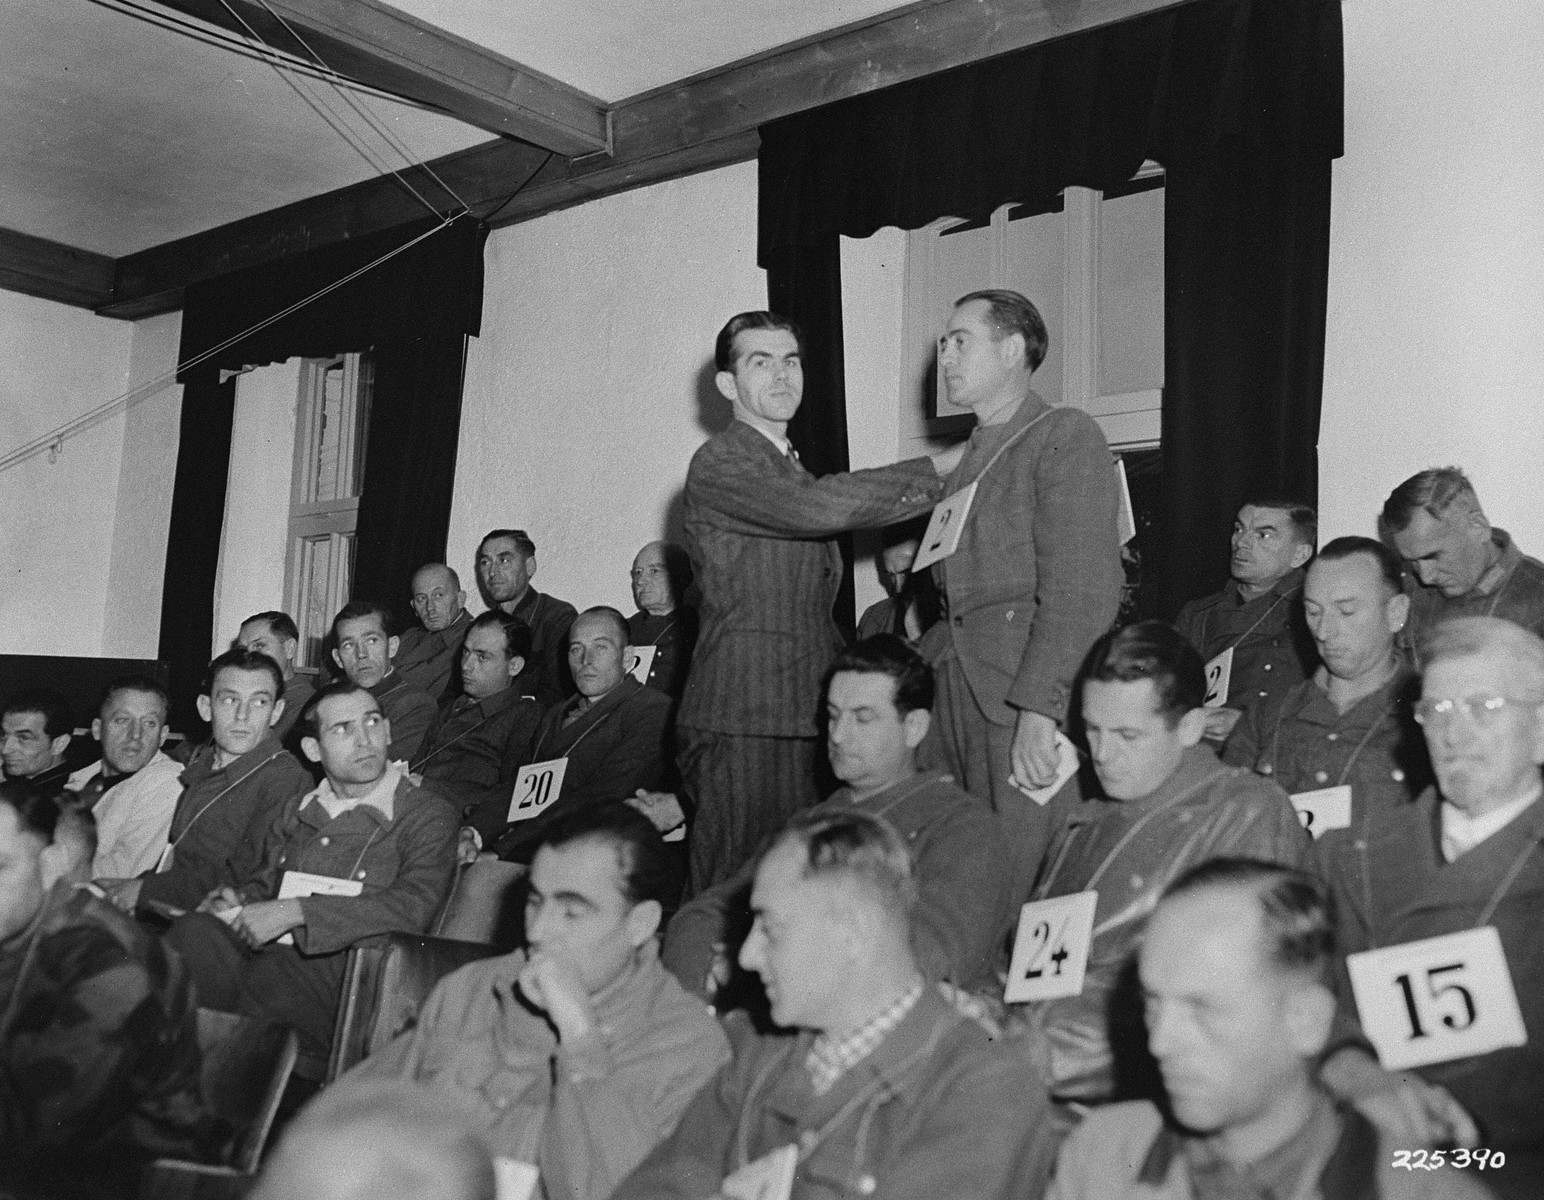 Michael Pellis, a former inmate at Dachau, identifies former SS-Obersturmfuehrer Friedrich Wilhelm Ruppert as the man responsible for selecting people to die in the crematorium, at the trial of former camp personnel and prisoners from Dachau.